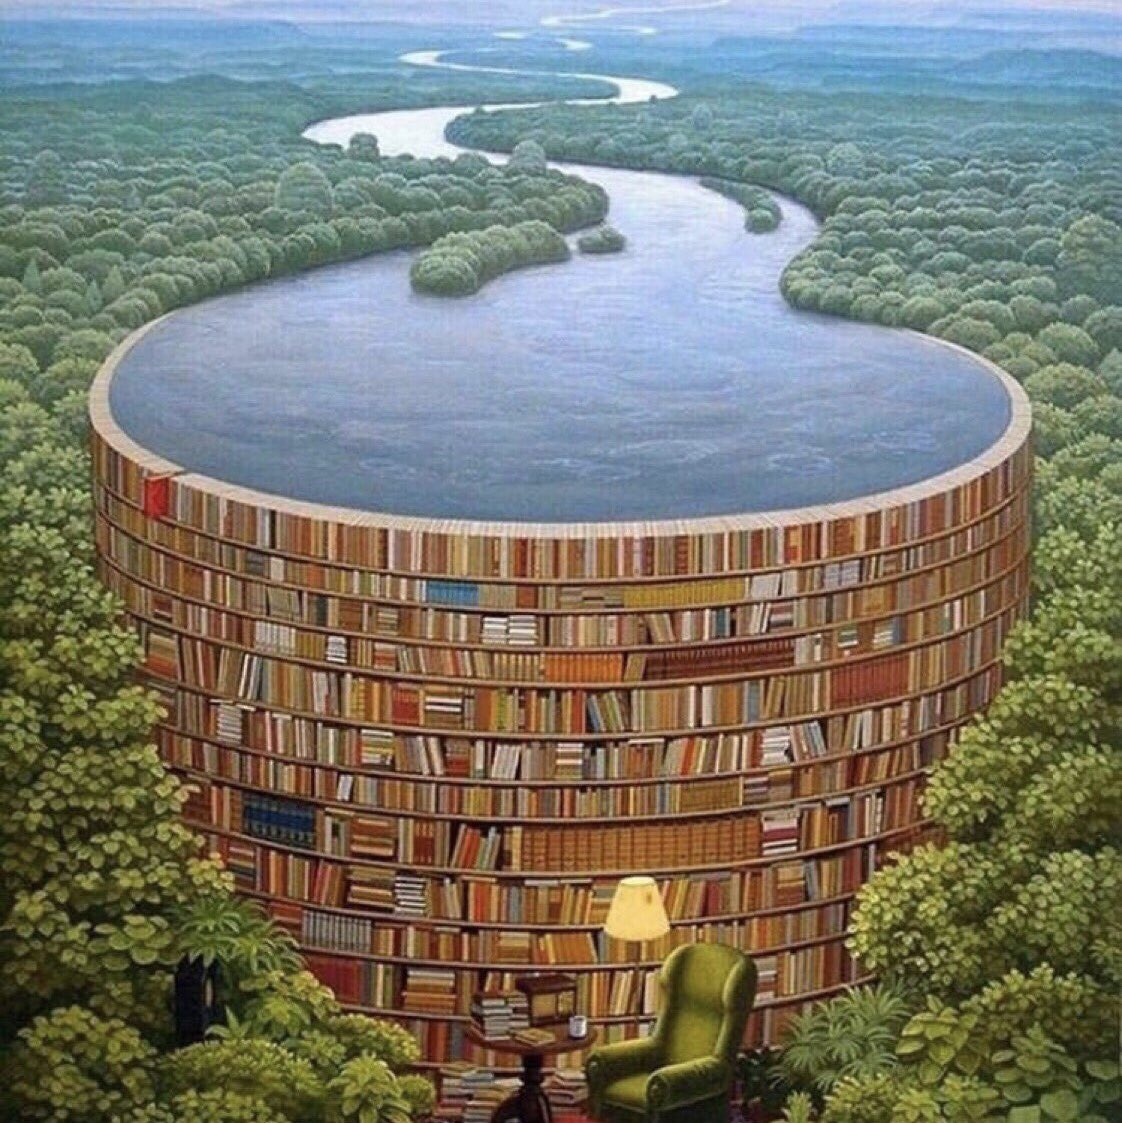 ❦Knowledge wasted is knowledge  lost.~Anne Scottlin #books #amreading #knowledge  #library #dam #PaintingByJacekYerka<br>http://pic.twitter.com/q6raFwiXp1